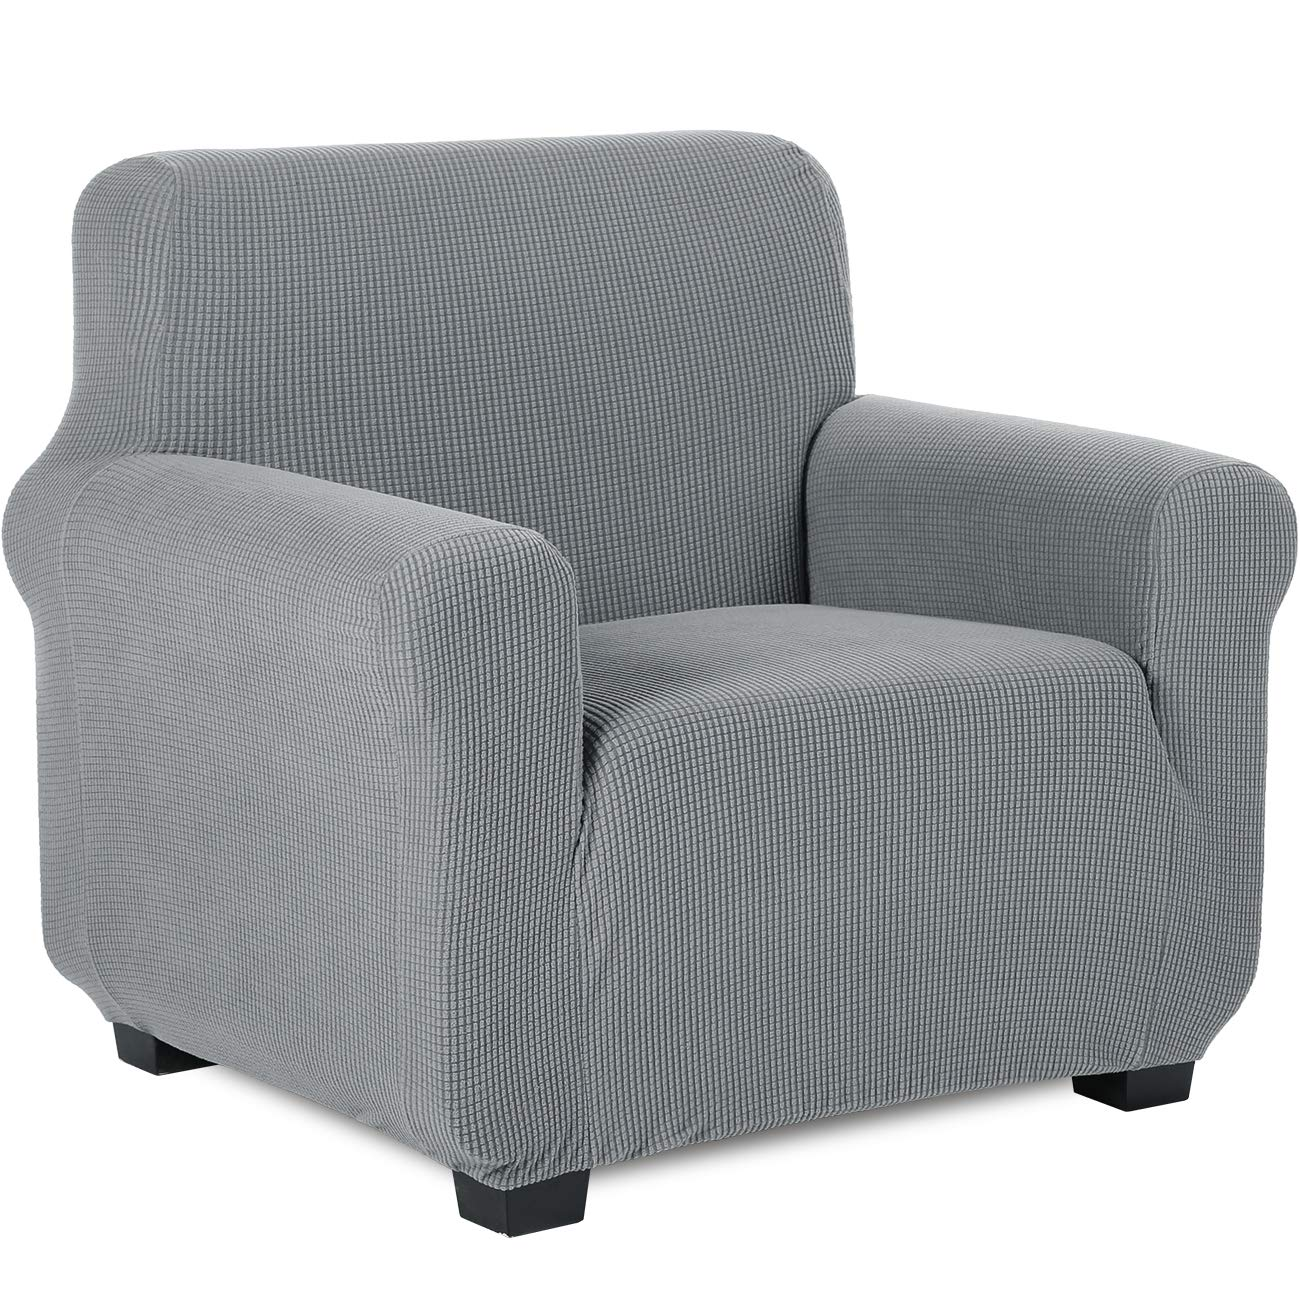 TIANSHU Armchair Slipcovers, Sofa Covers, Couch covers, Pet Covers(Chair, Light Gray)